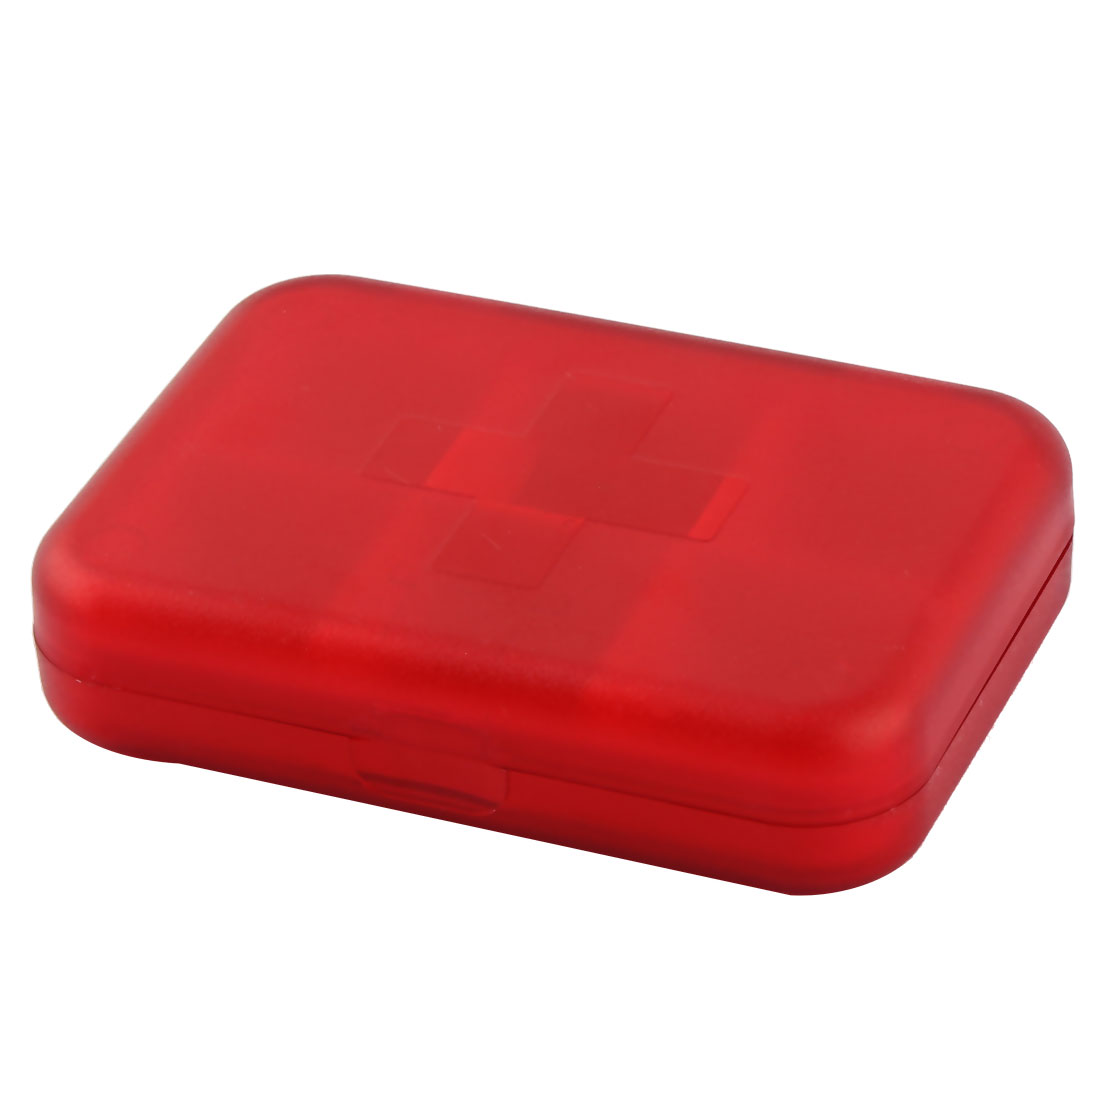 Office Travel Plastic Square Shaped Tablet Medicinal Pills Boxes Cases Holder Red